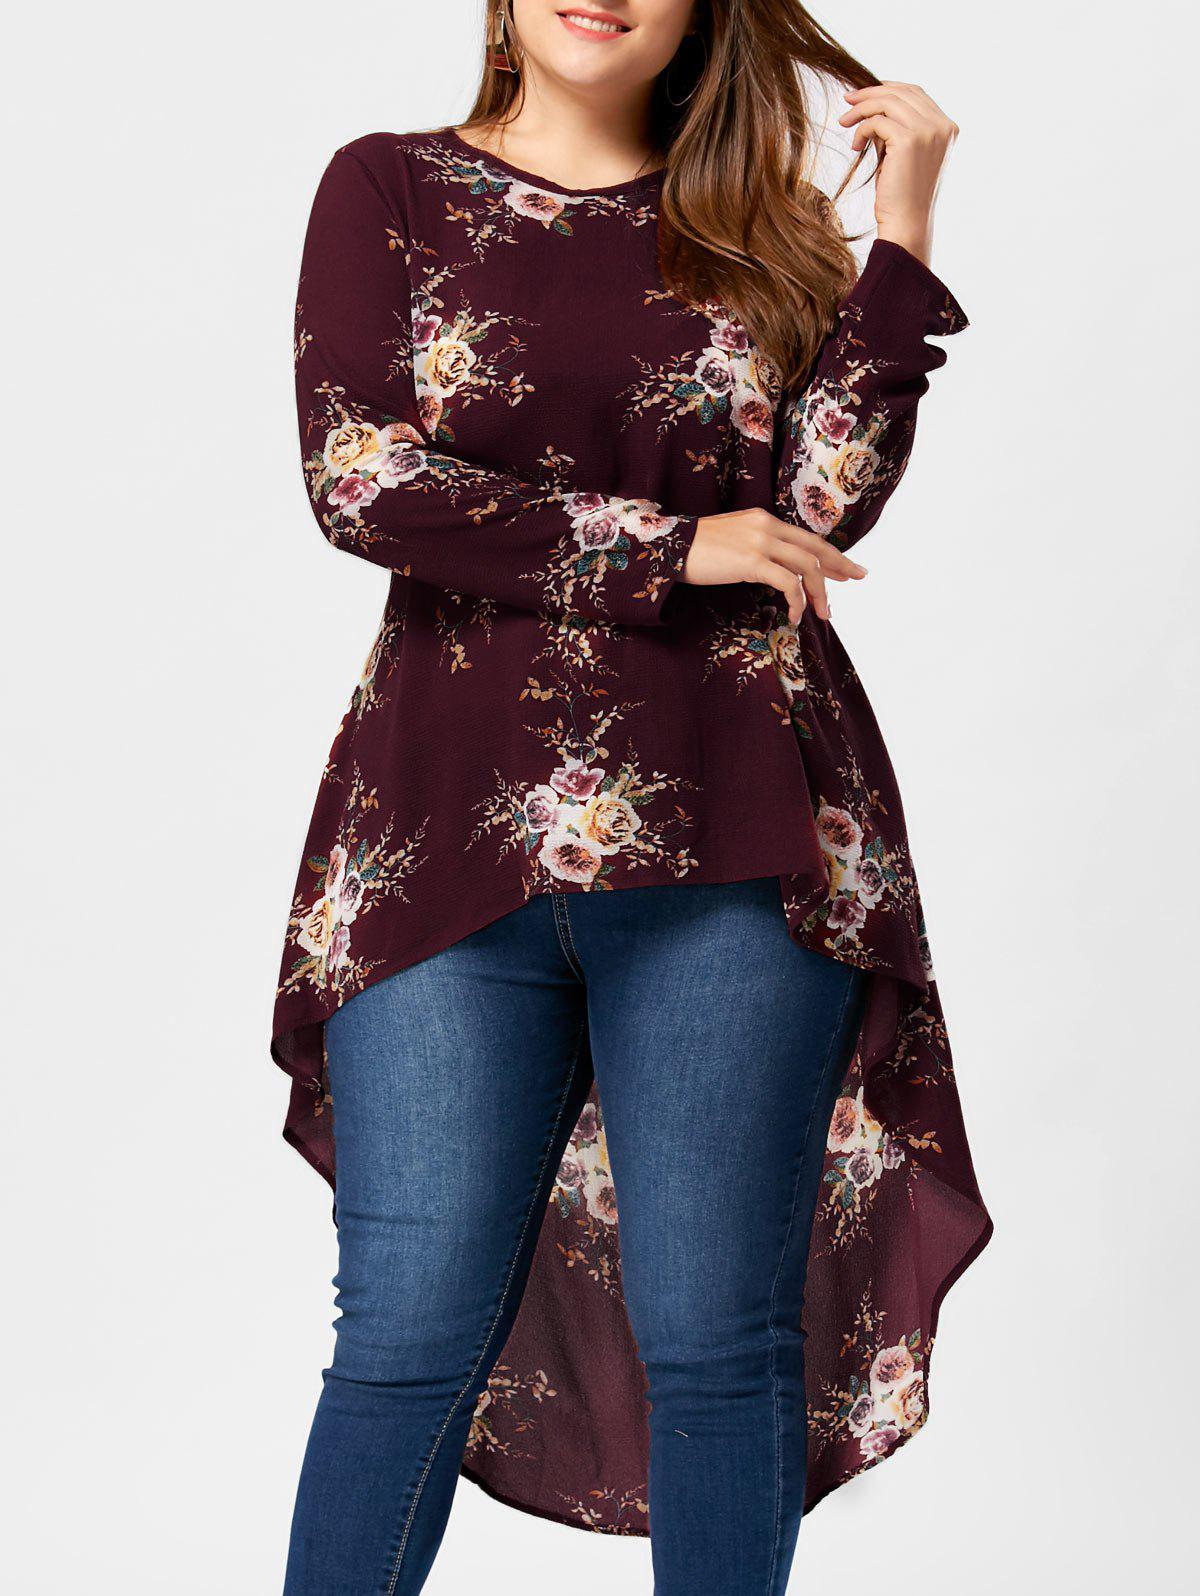 Plus Size Floral High Low Hem BlouseWOMEN<br><br>Size: 2XL; Color: WINE RED; Material: Polyester; Shirt Length: Long; Sleeve Length: Full; Collar: Crew Neck; Style: Casual; Season: Fall,Spring,Summer; Pattern Type: Floral; Weight: 0.3400kg; Package Contents: 1 x Blouse;